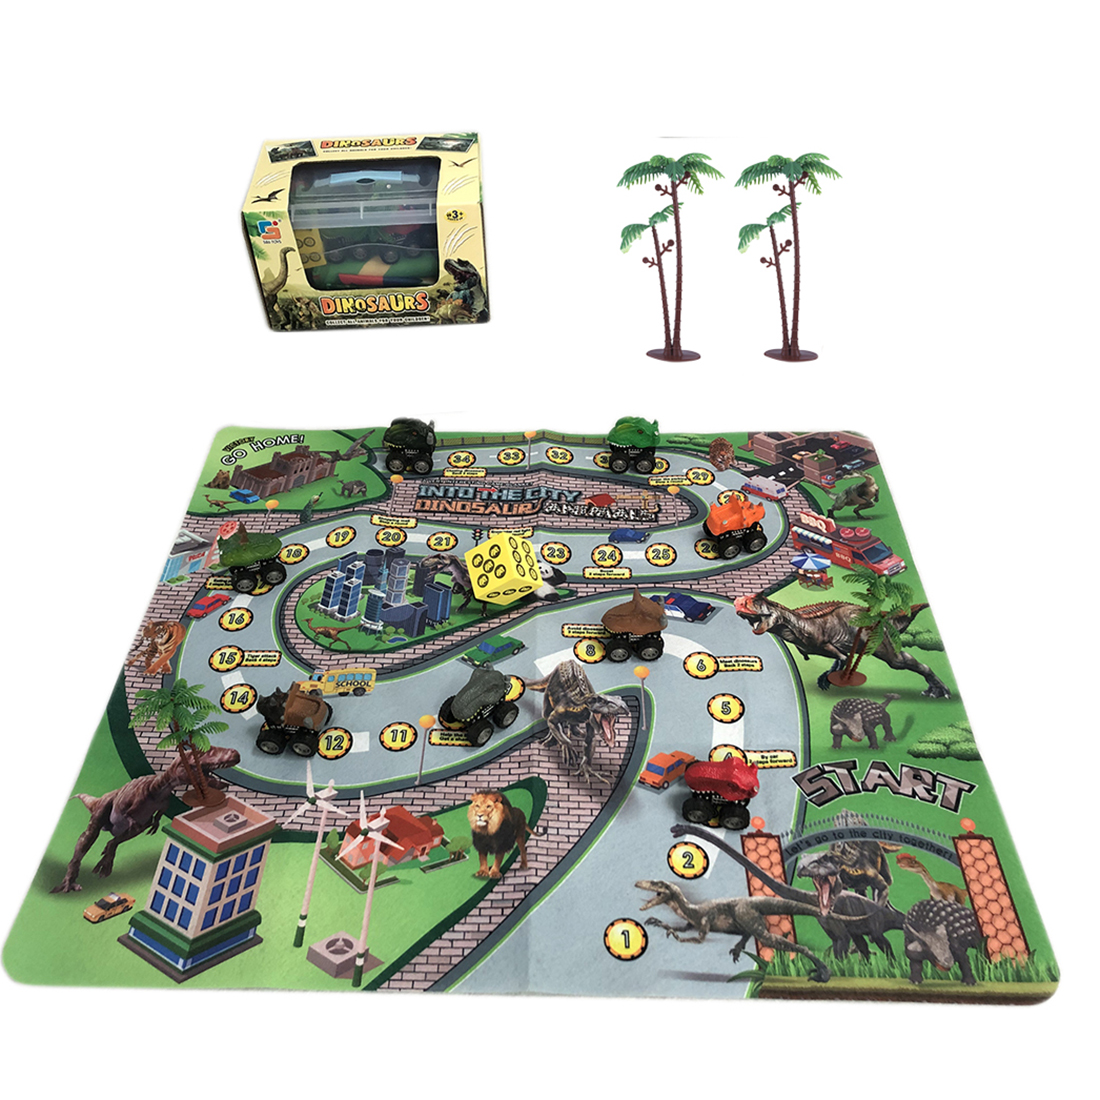 Dinosaur Car City Game Rug Dinosaur Figures with Activity Play Mat Discover <font><b>Treasure</b></font> Game <font><b>Toys</b></font> Baby & Toddler <font><b>Toys</b></font> Play Mats image